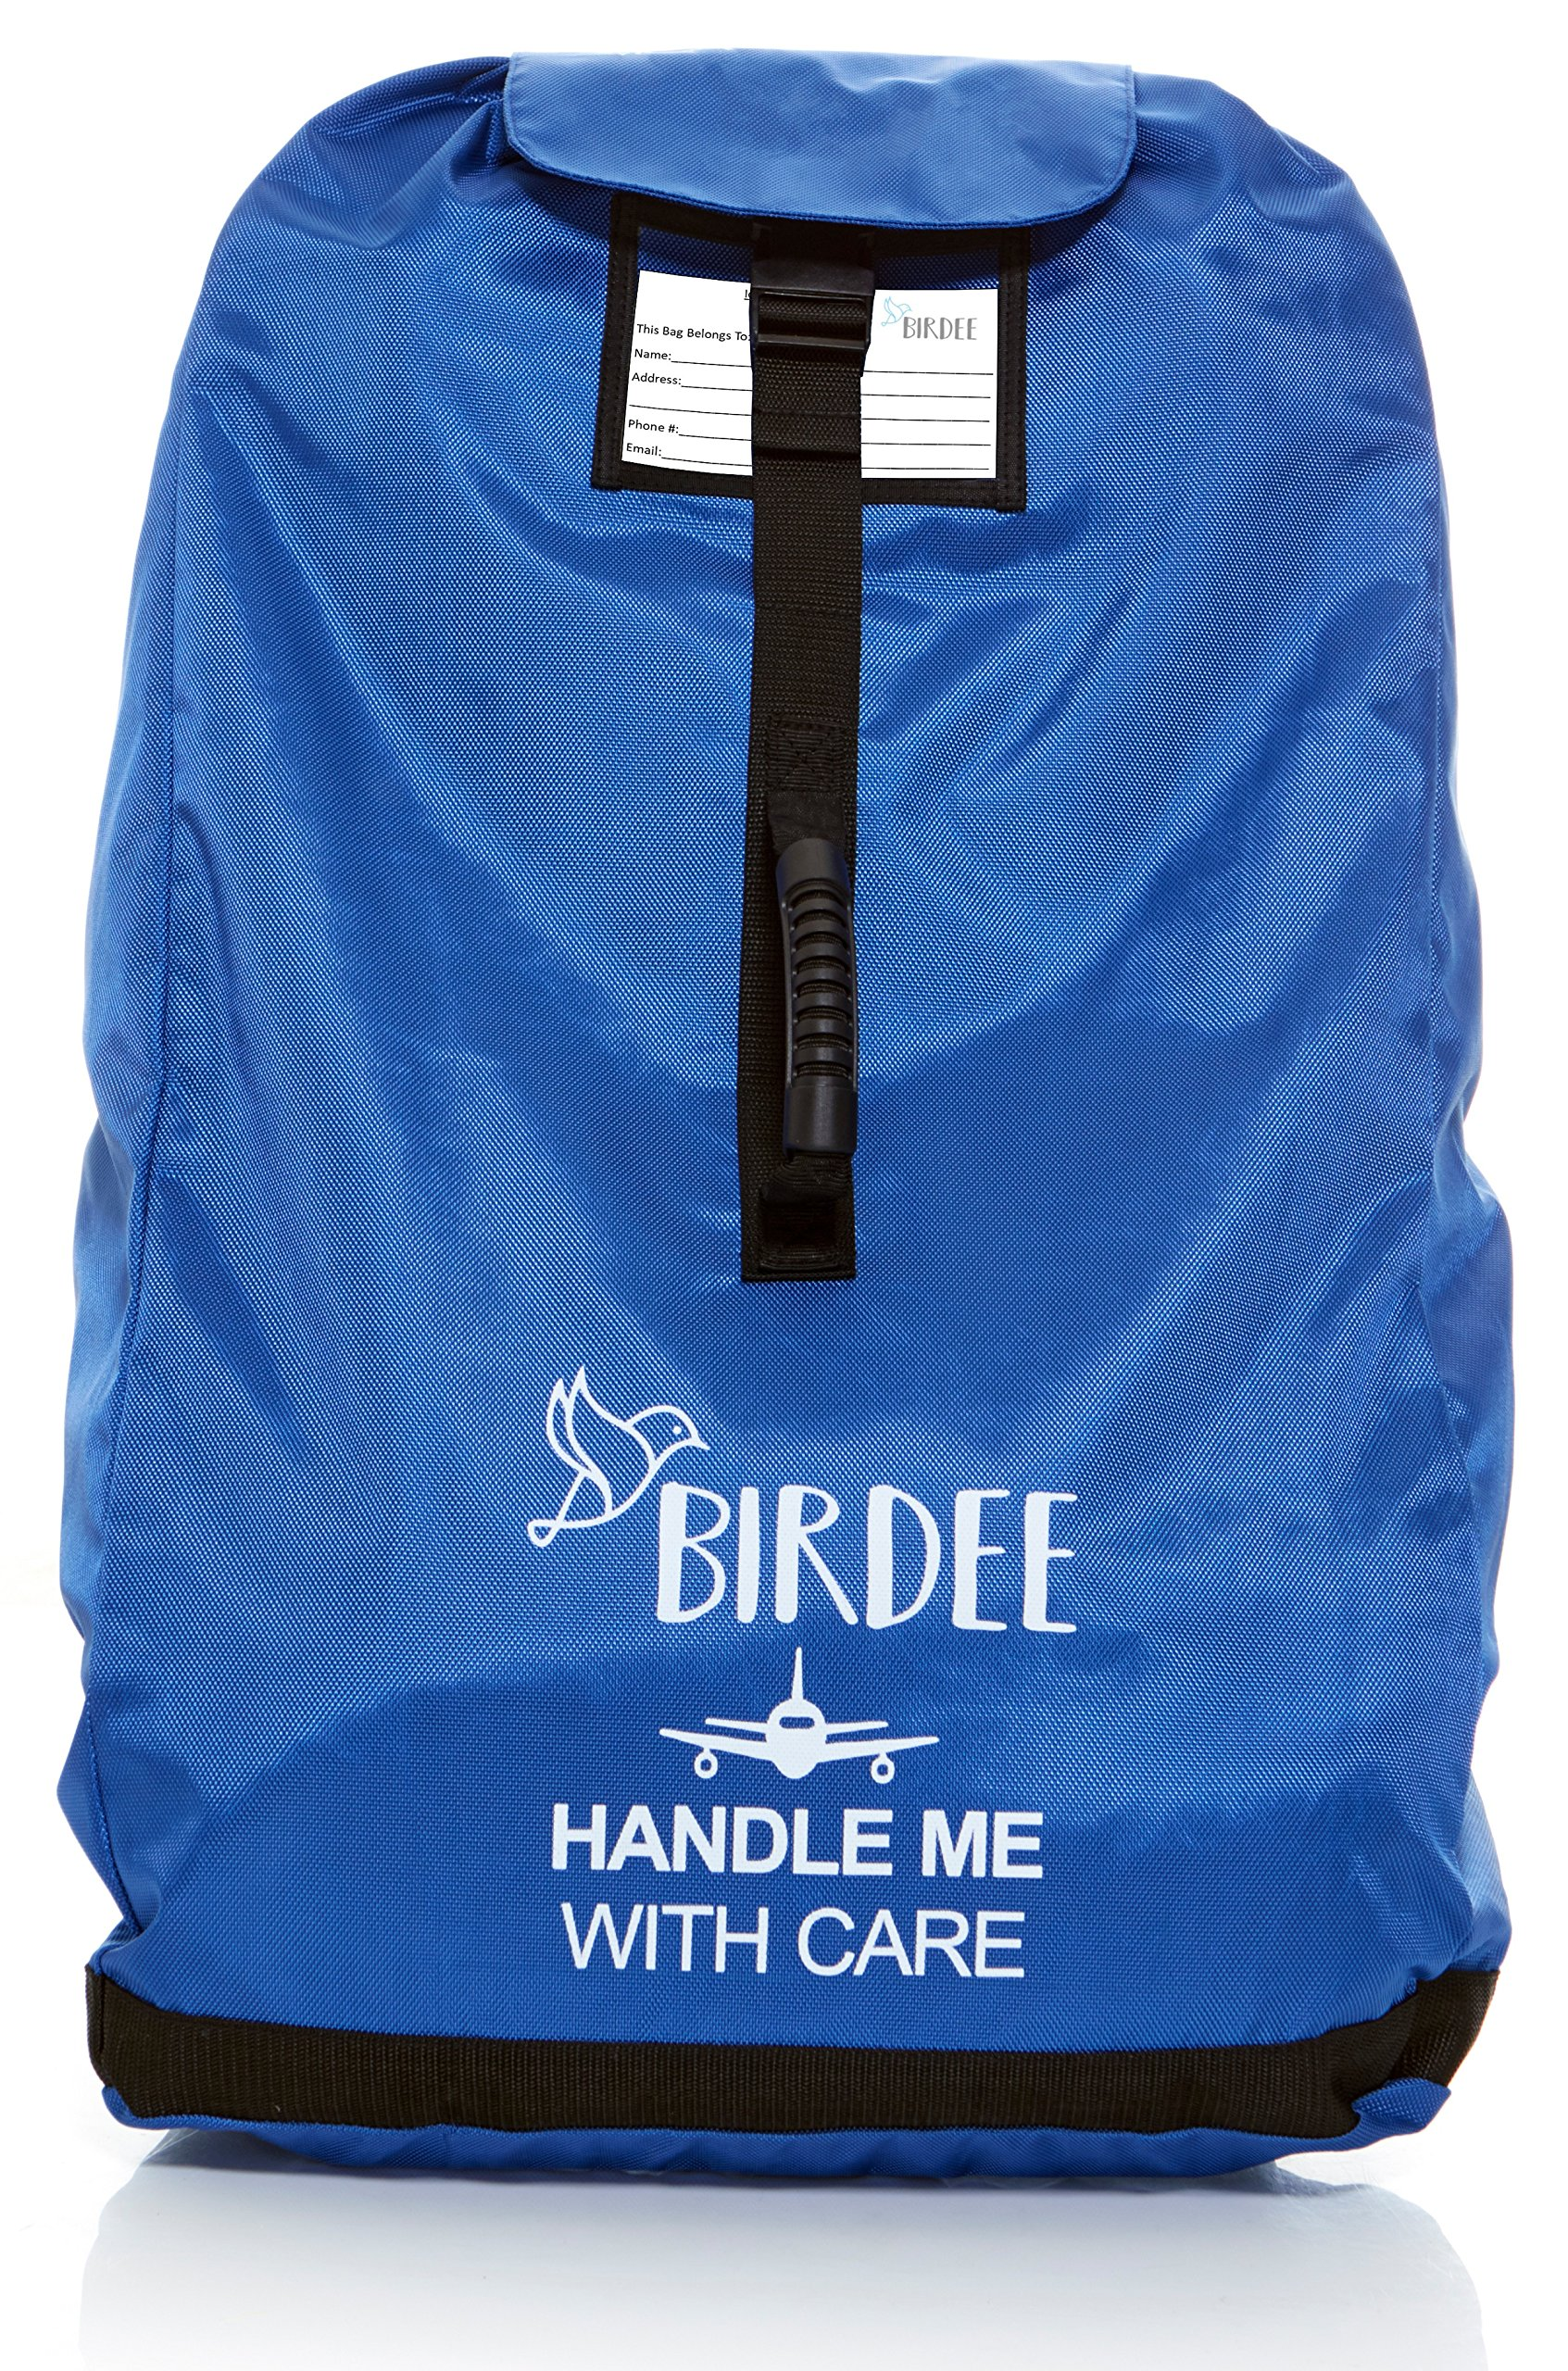 Birdee Car Seat Travel Bag for Airplane Gate Check and Carrier for Travel by Birdee